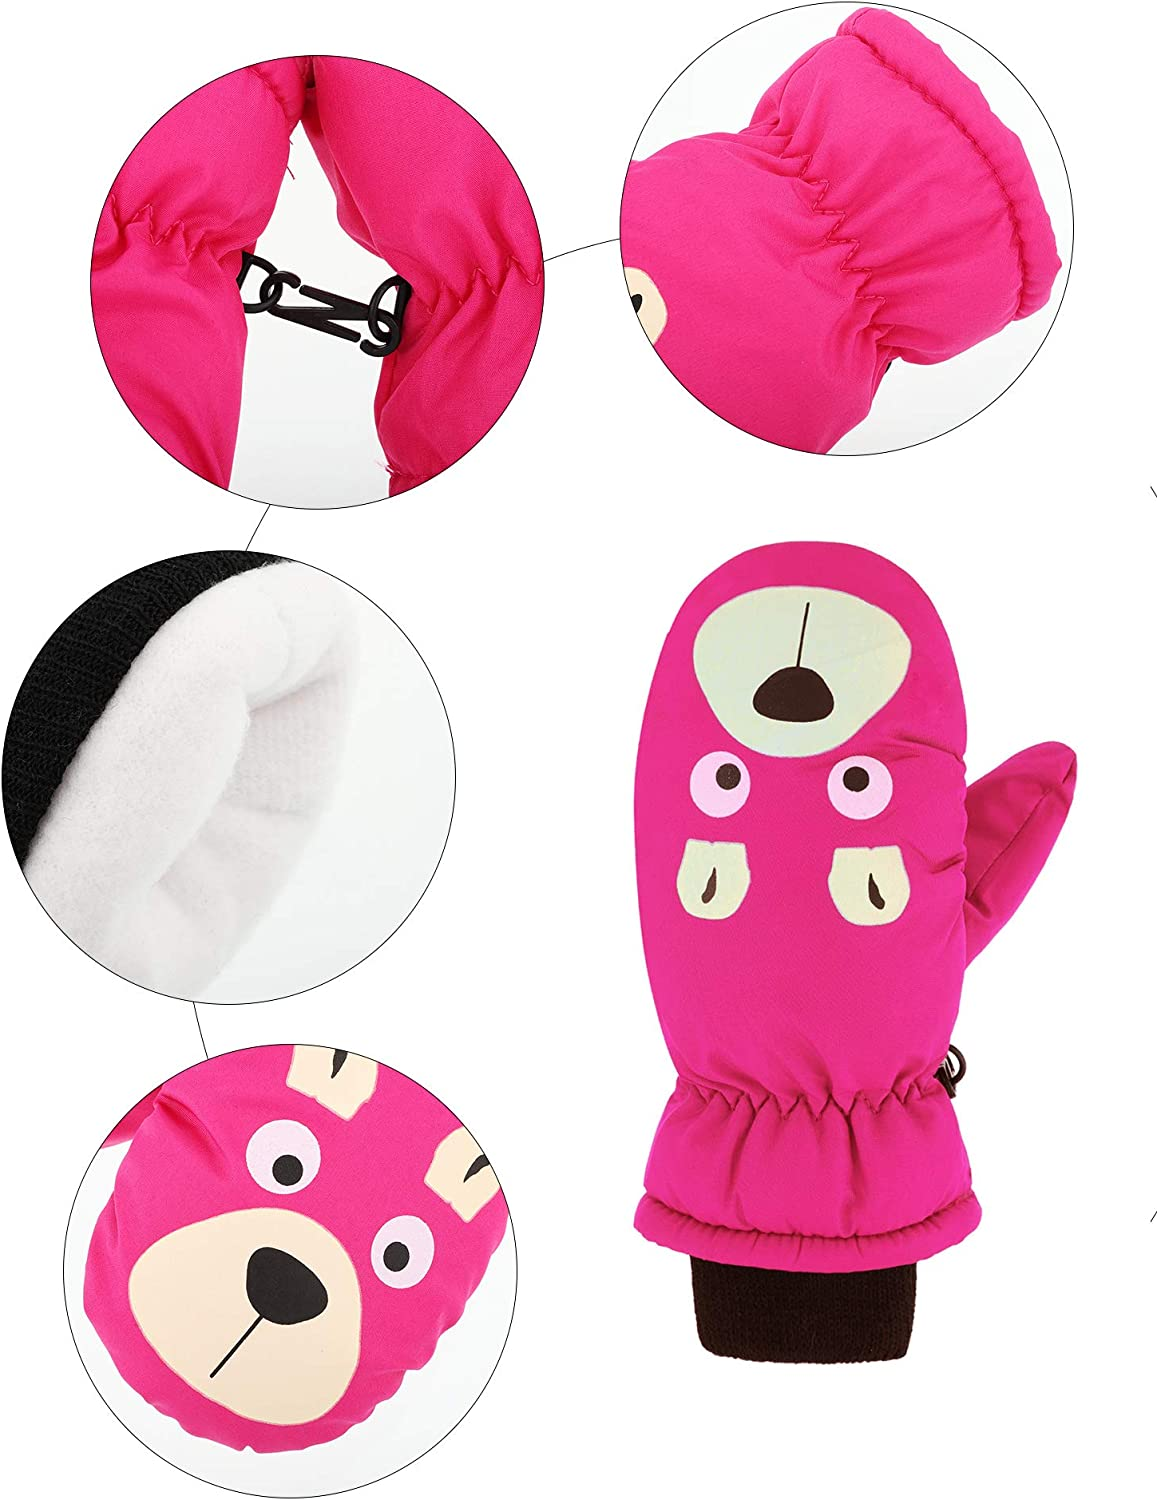 2 Pairs Kids Ski Mittens Children Winter Windproof Gloves Warm Sports Snow Mittens